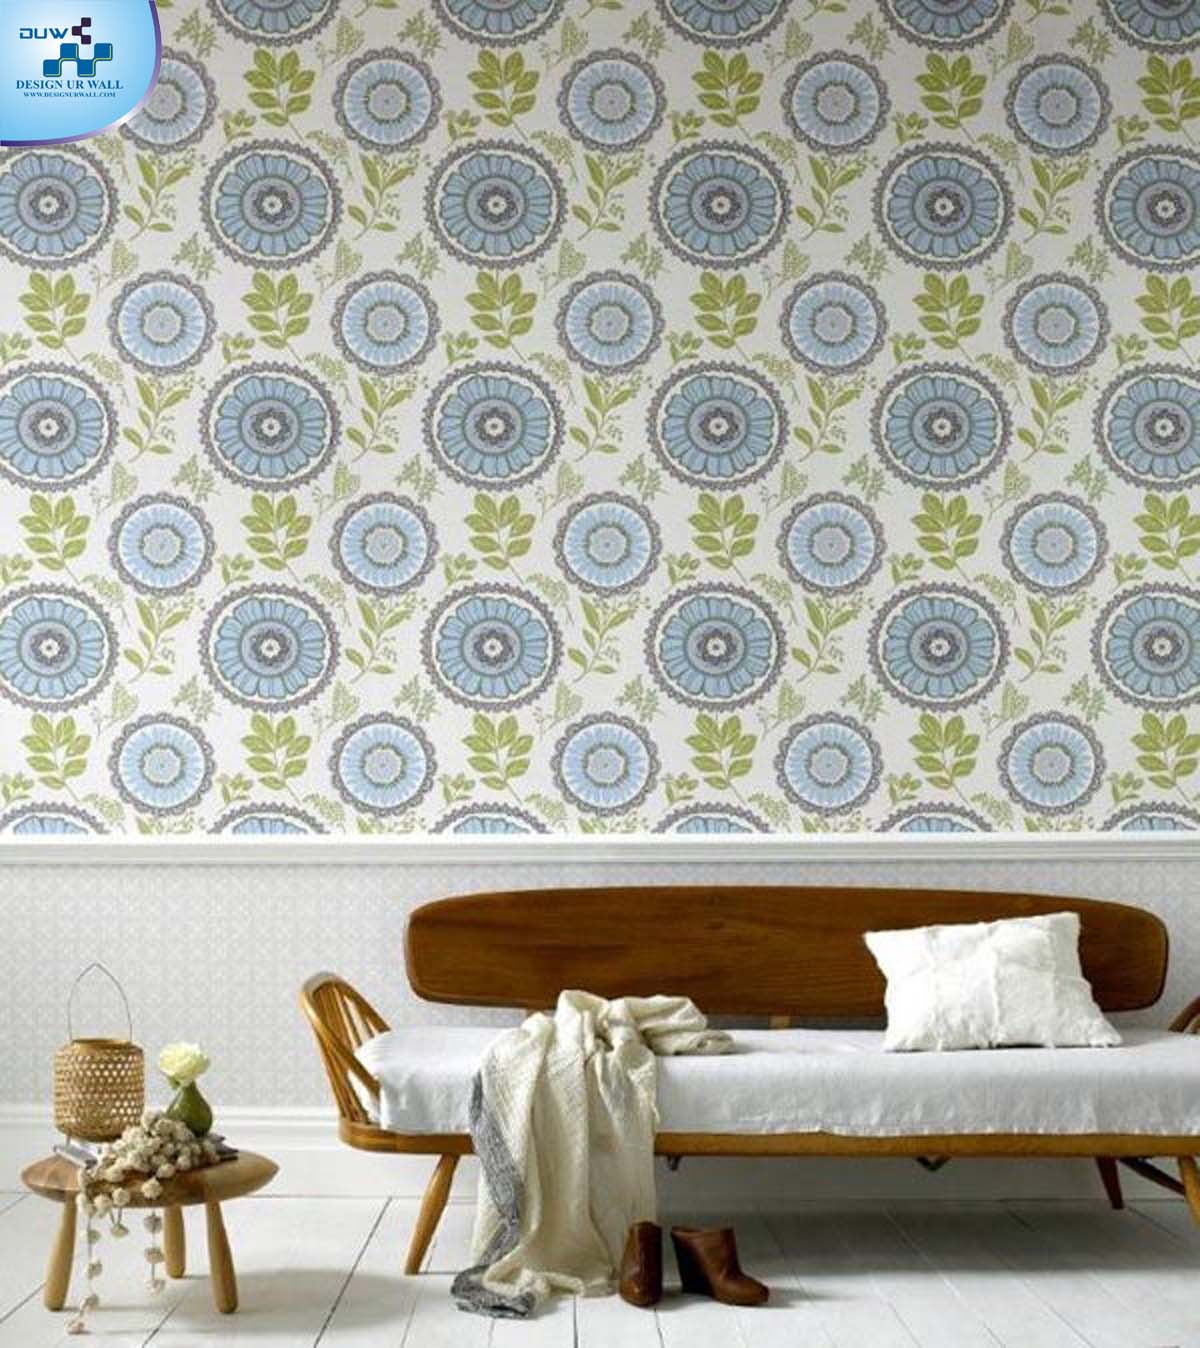 imported wallpaper merchant: designer wallpaper designs in lucknow.